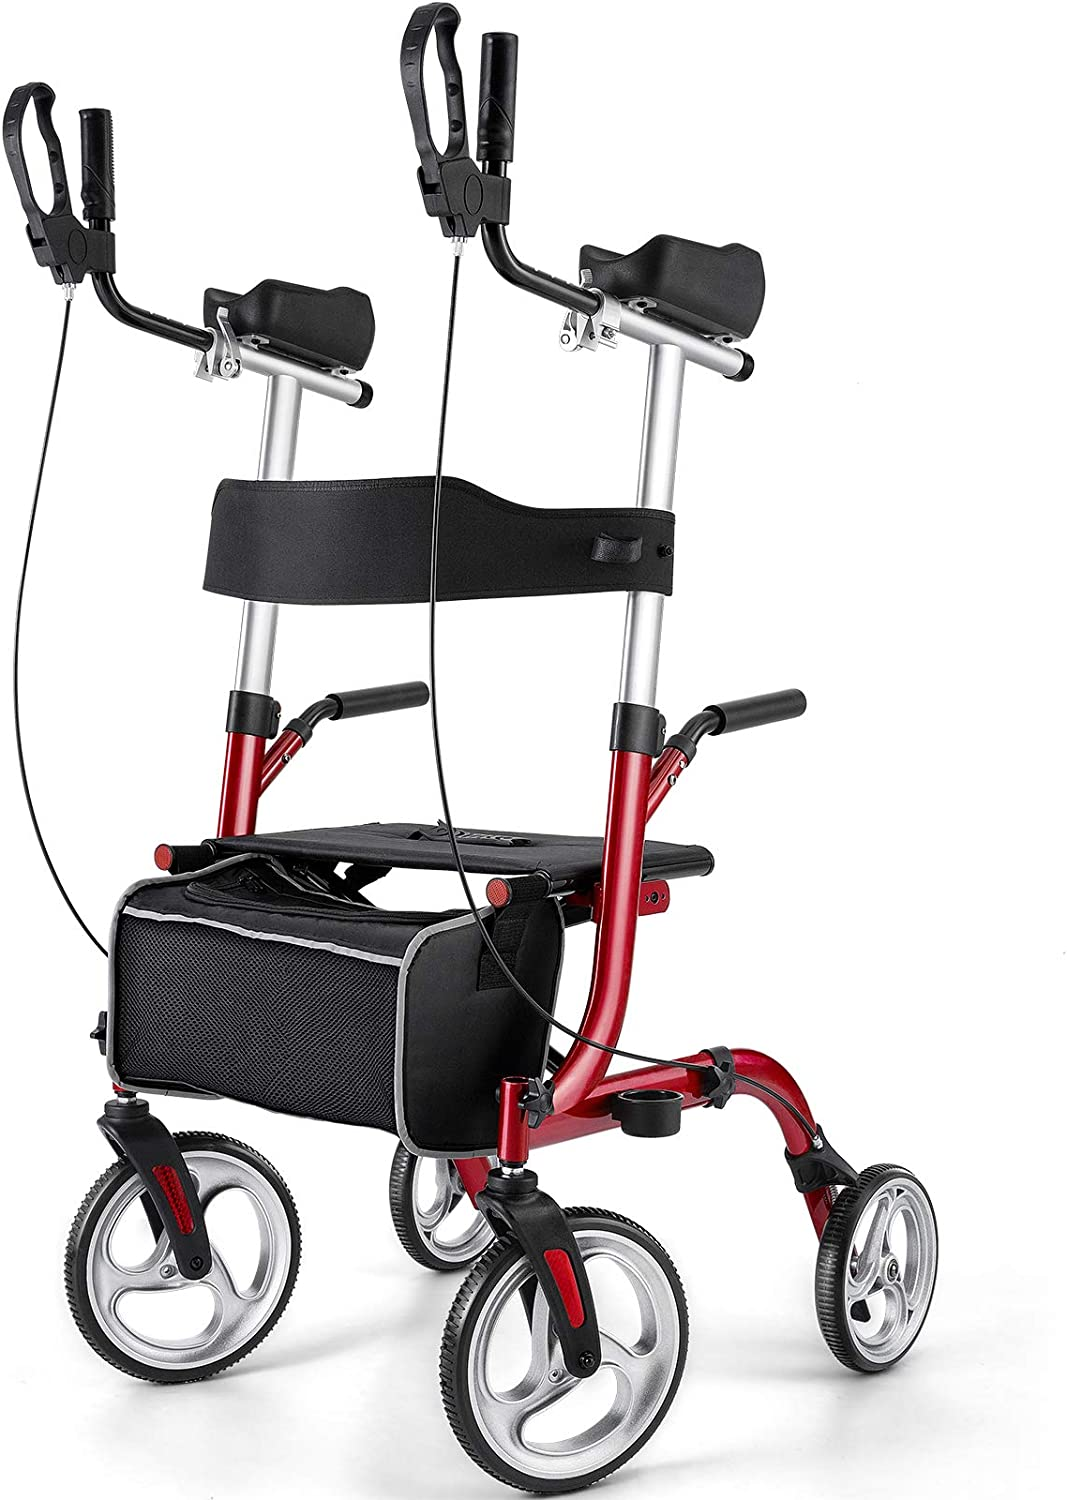 Outlet High quality SALE Rinkmo Rollator for Seniors and Folding Adults Up Stand